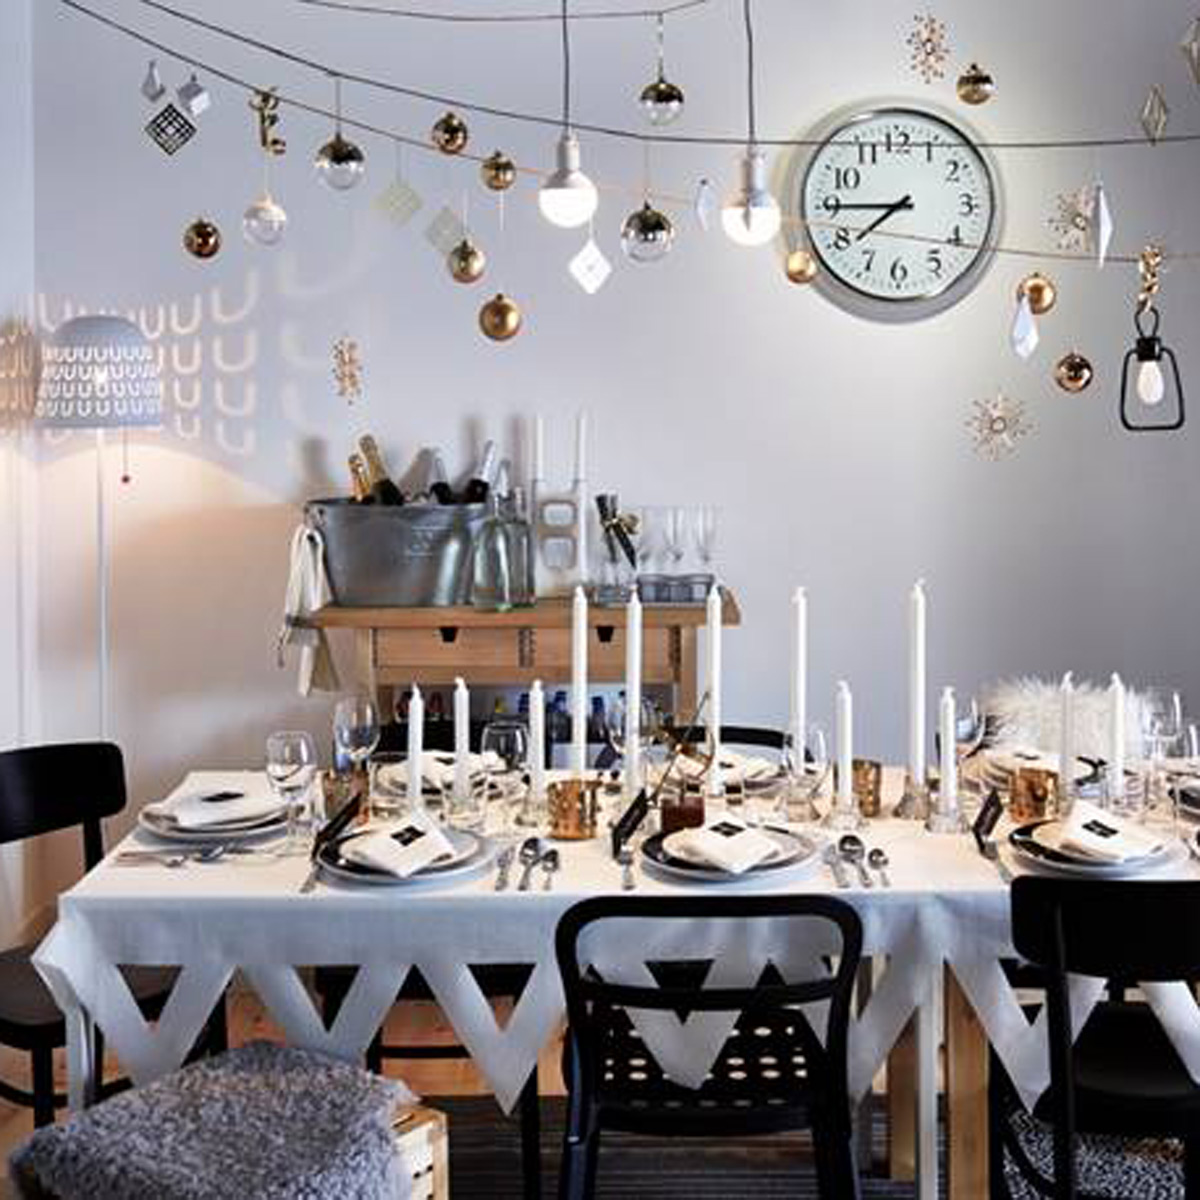 New Years Eve home decorations  Good Housekeeping